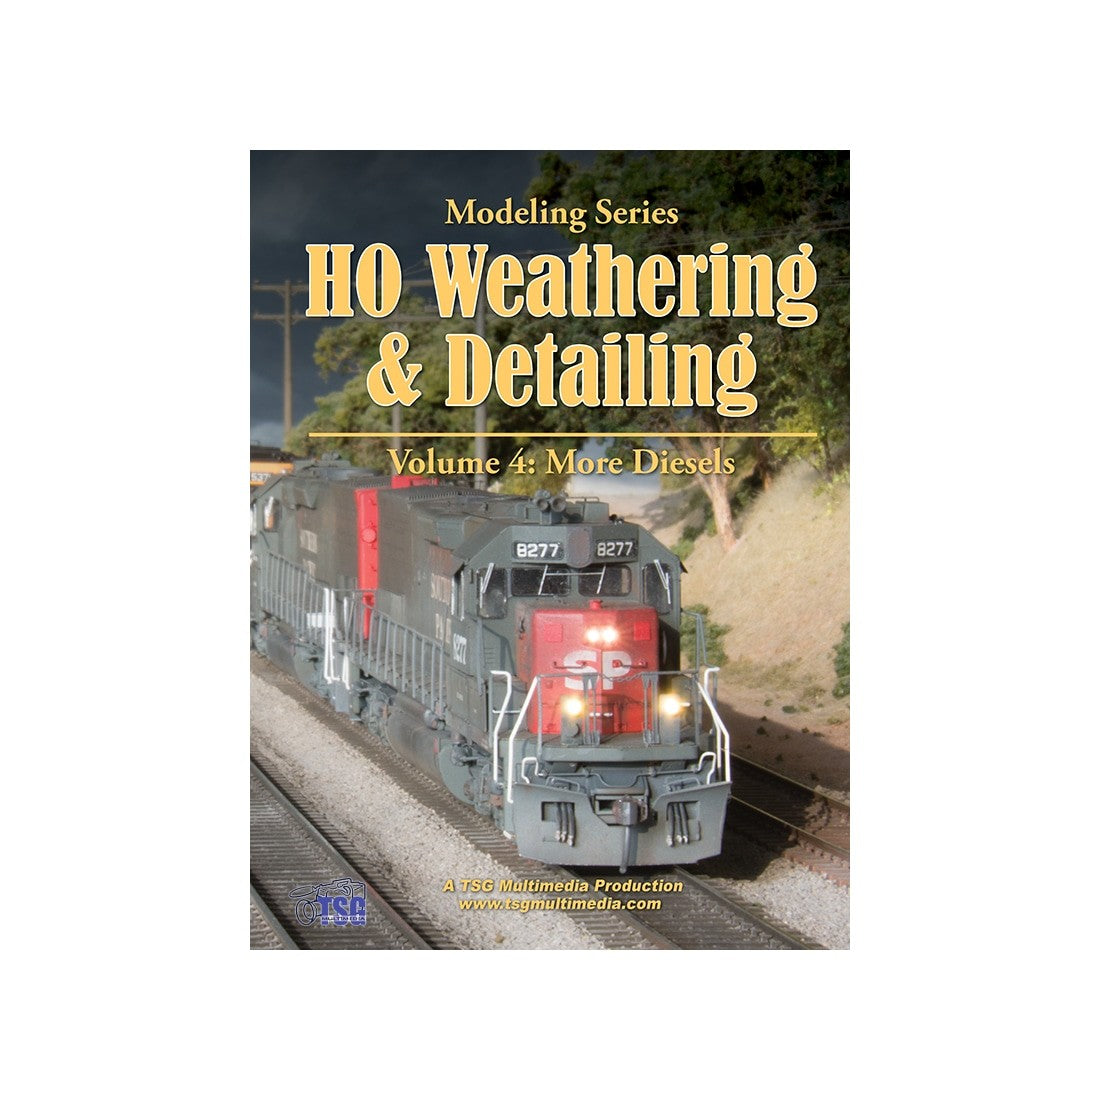 DVD: Modeling Series - HO Scale Weathering & Detailing - Volume 4